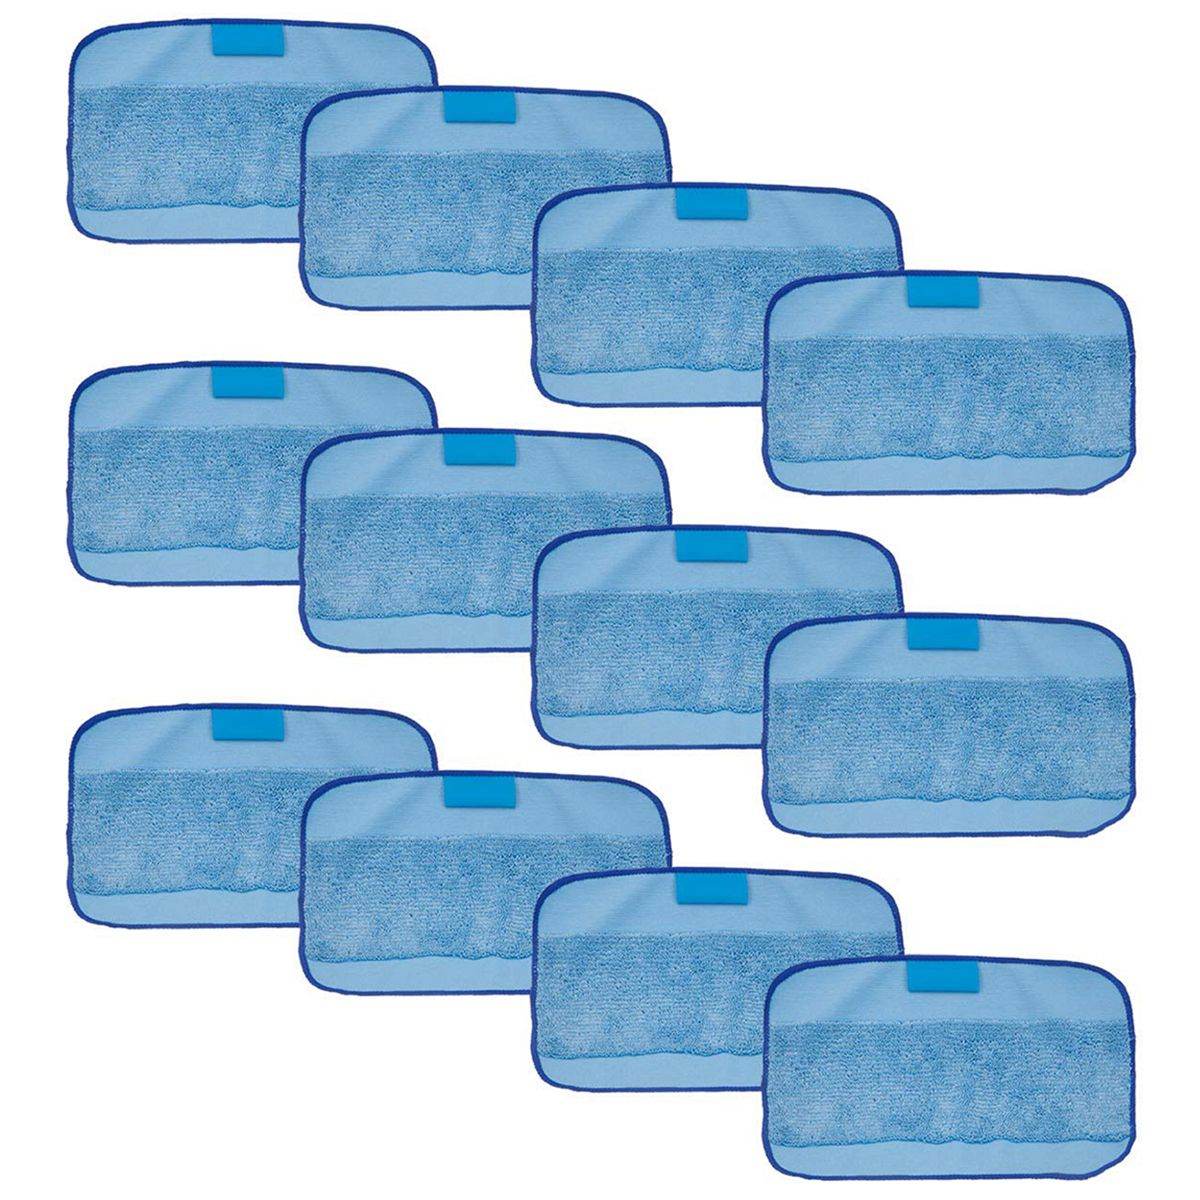 12Pcs Wet Cloths for Braava Replacement Washable Pro Mopping Cloths for iRobot Braava vacuum cleaner 380t 320 Mint 4200 5200 microfiber 8pcs wet and 2pcs dry dweeping pro clean mopping cloths for robot irobot braava minit 4200 5200 5200c 380 380t